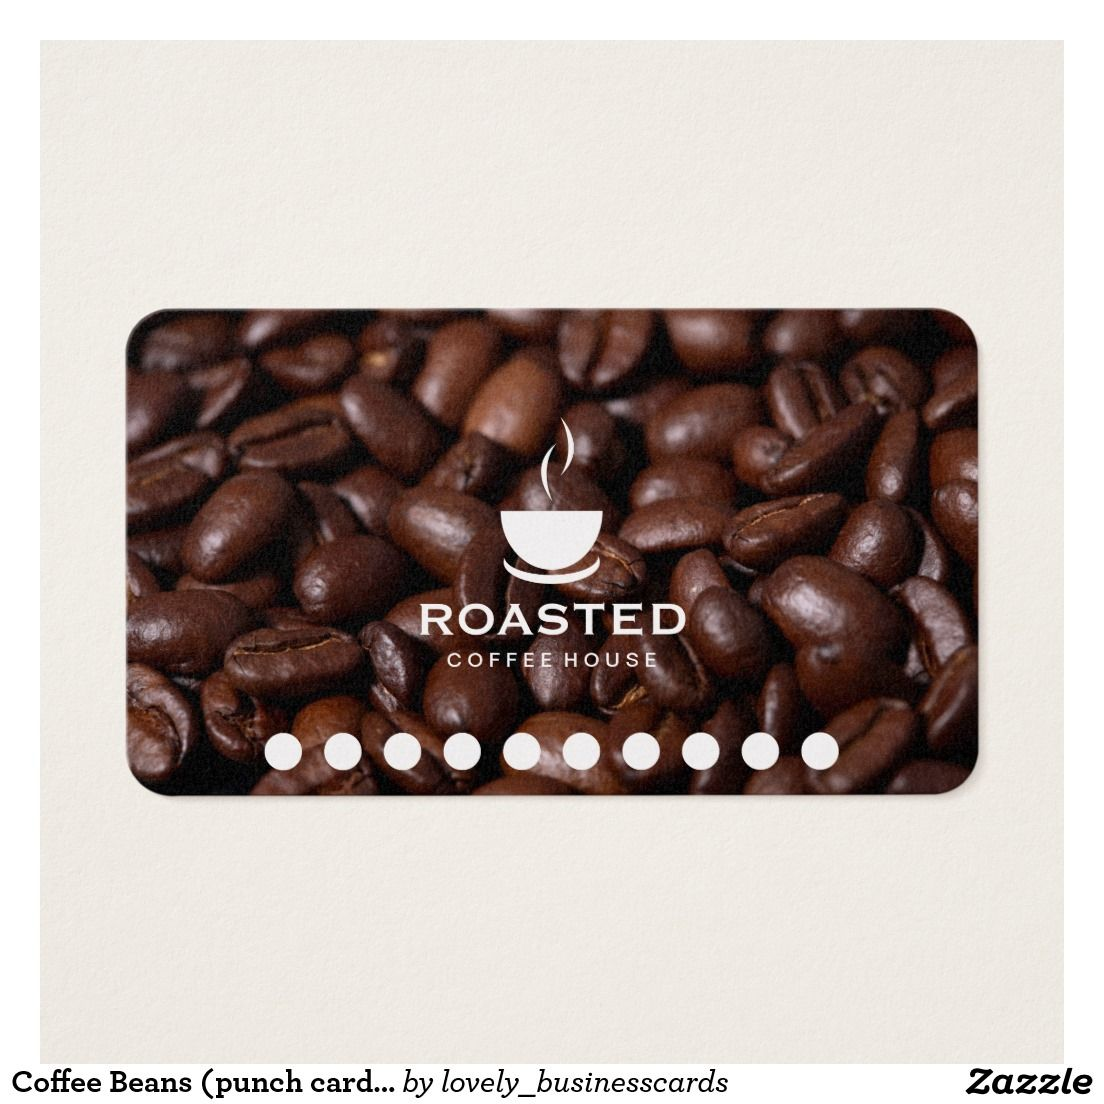 Coffee Beans Punch Card Variation Zazzle Com In 2020 Coffee Beans Coffee Cards Coffee Roasting